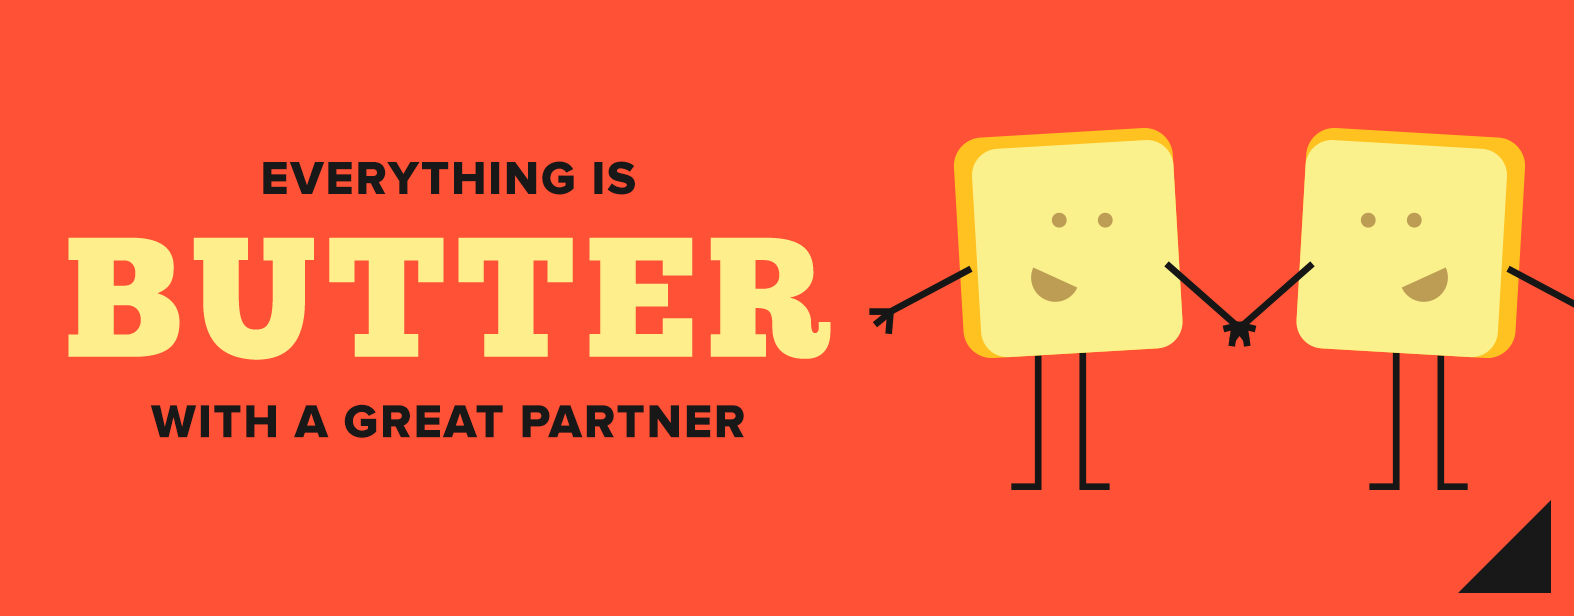 Everything is butter with a great partner.